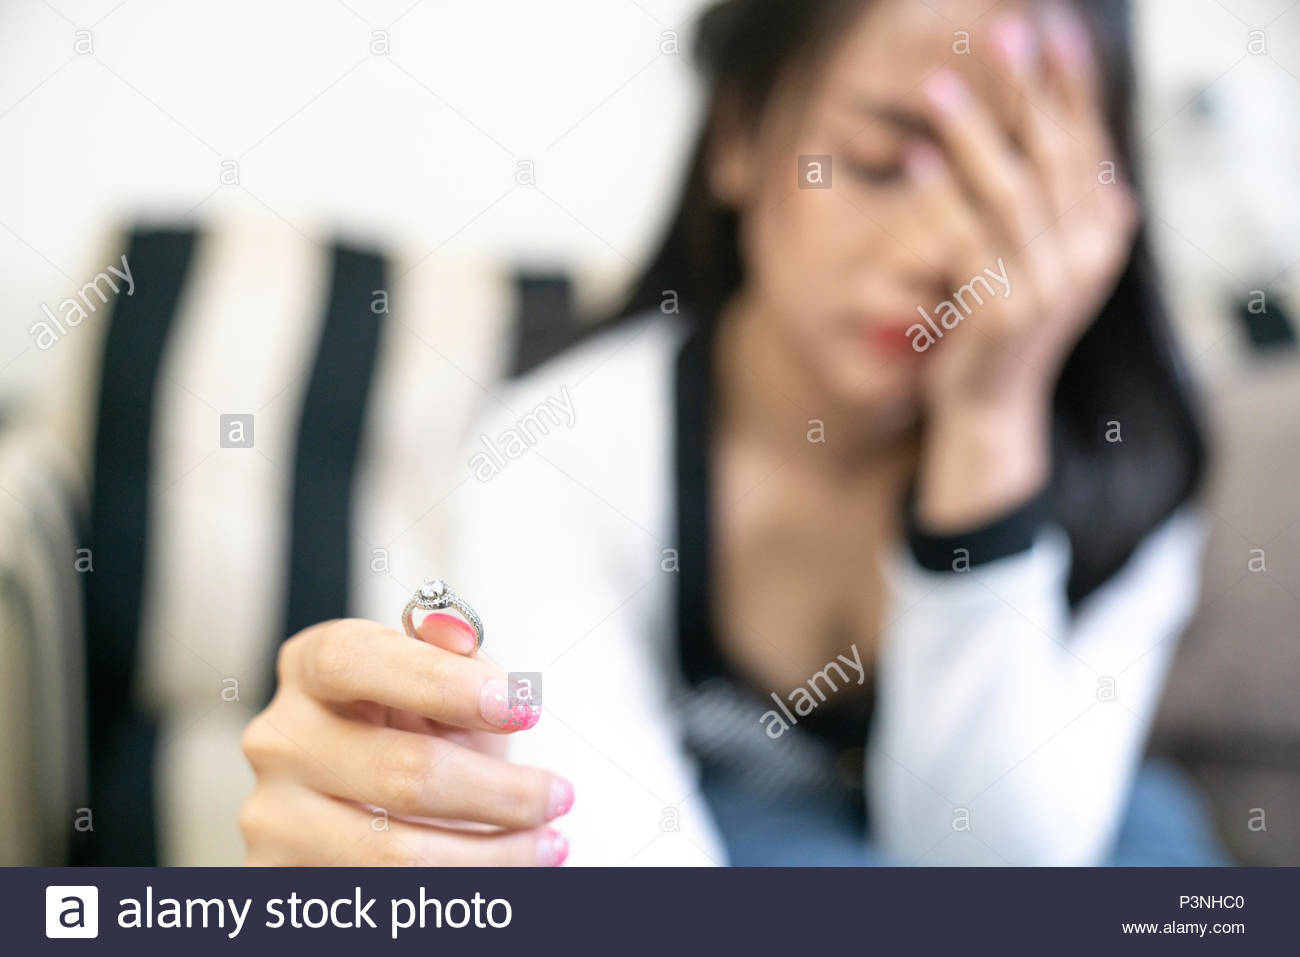 Closeup of a single sad wife after divorce lamenting holding the wedding ring in a house interior - Stock Image